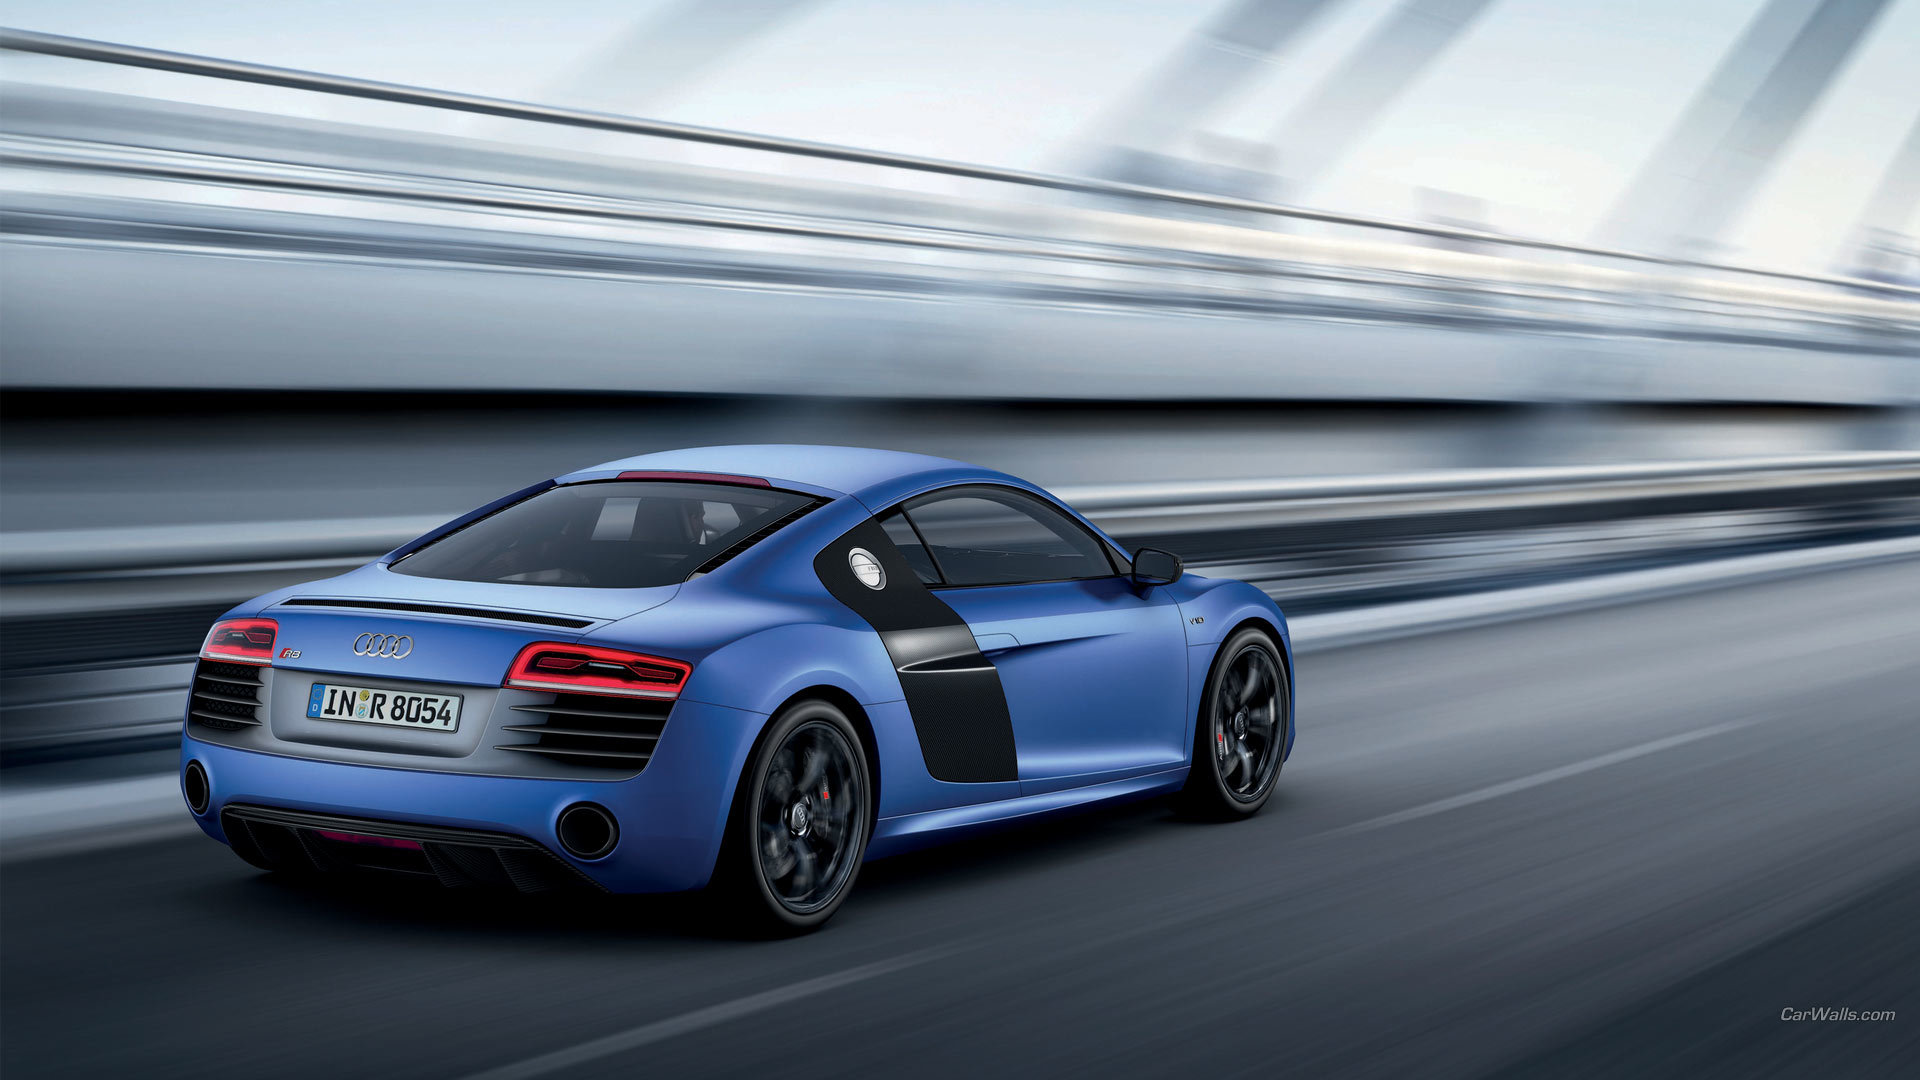 Awesome Audi R8 Free Wallpaper Id 452673 For Full Hd 1080p Pc